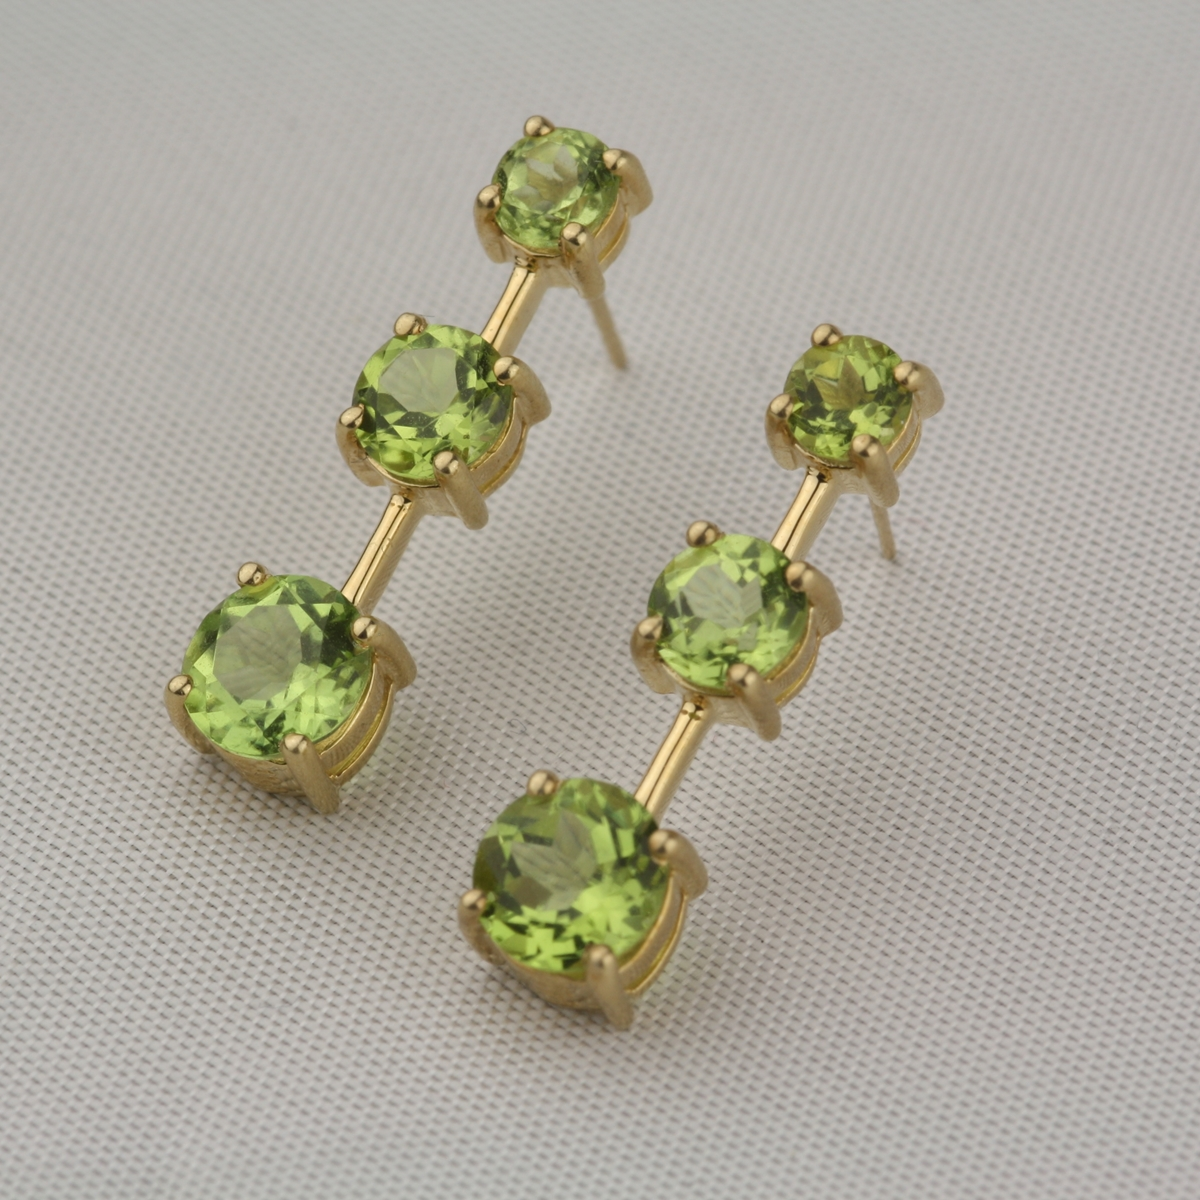 crop earrings bee the upscale peridot shop subsampling fennell false jewellery stud theo different scale product